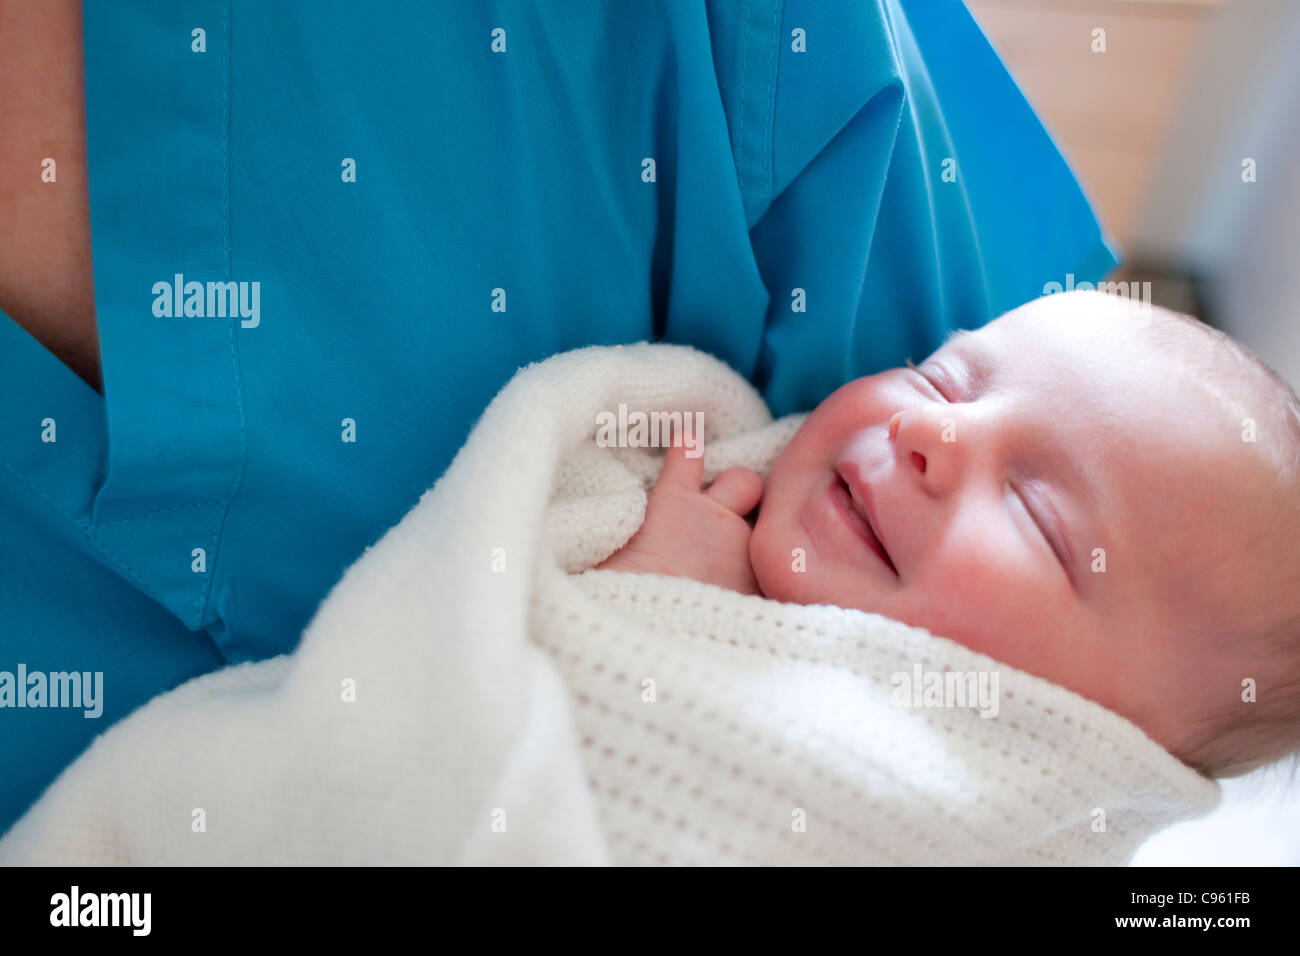 Newborn baby held by a nurse. - Stock Image